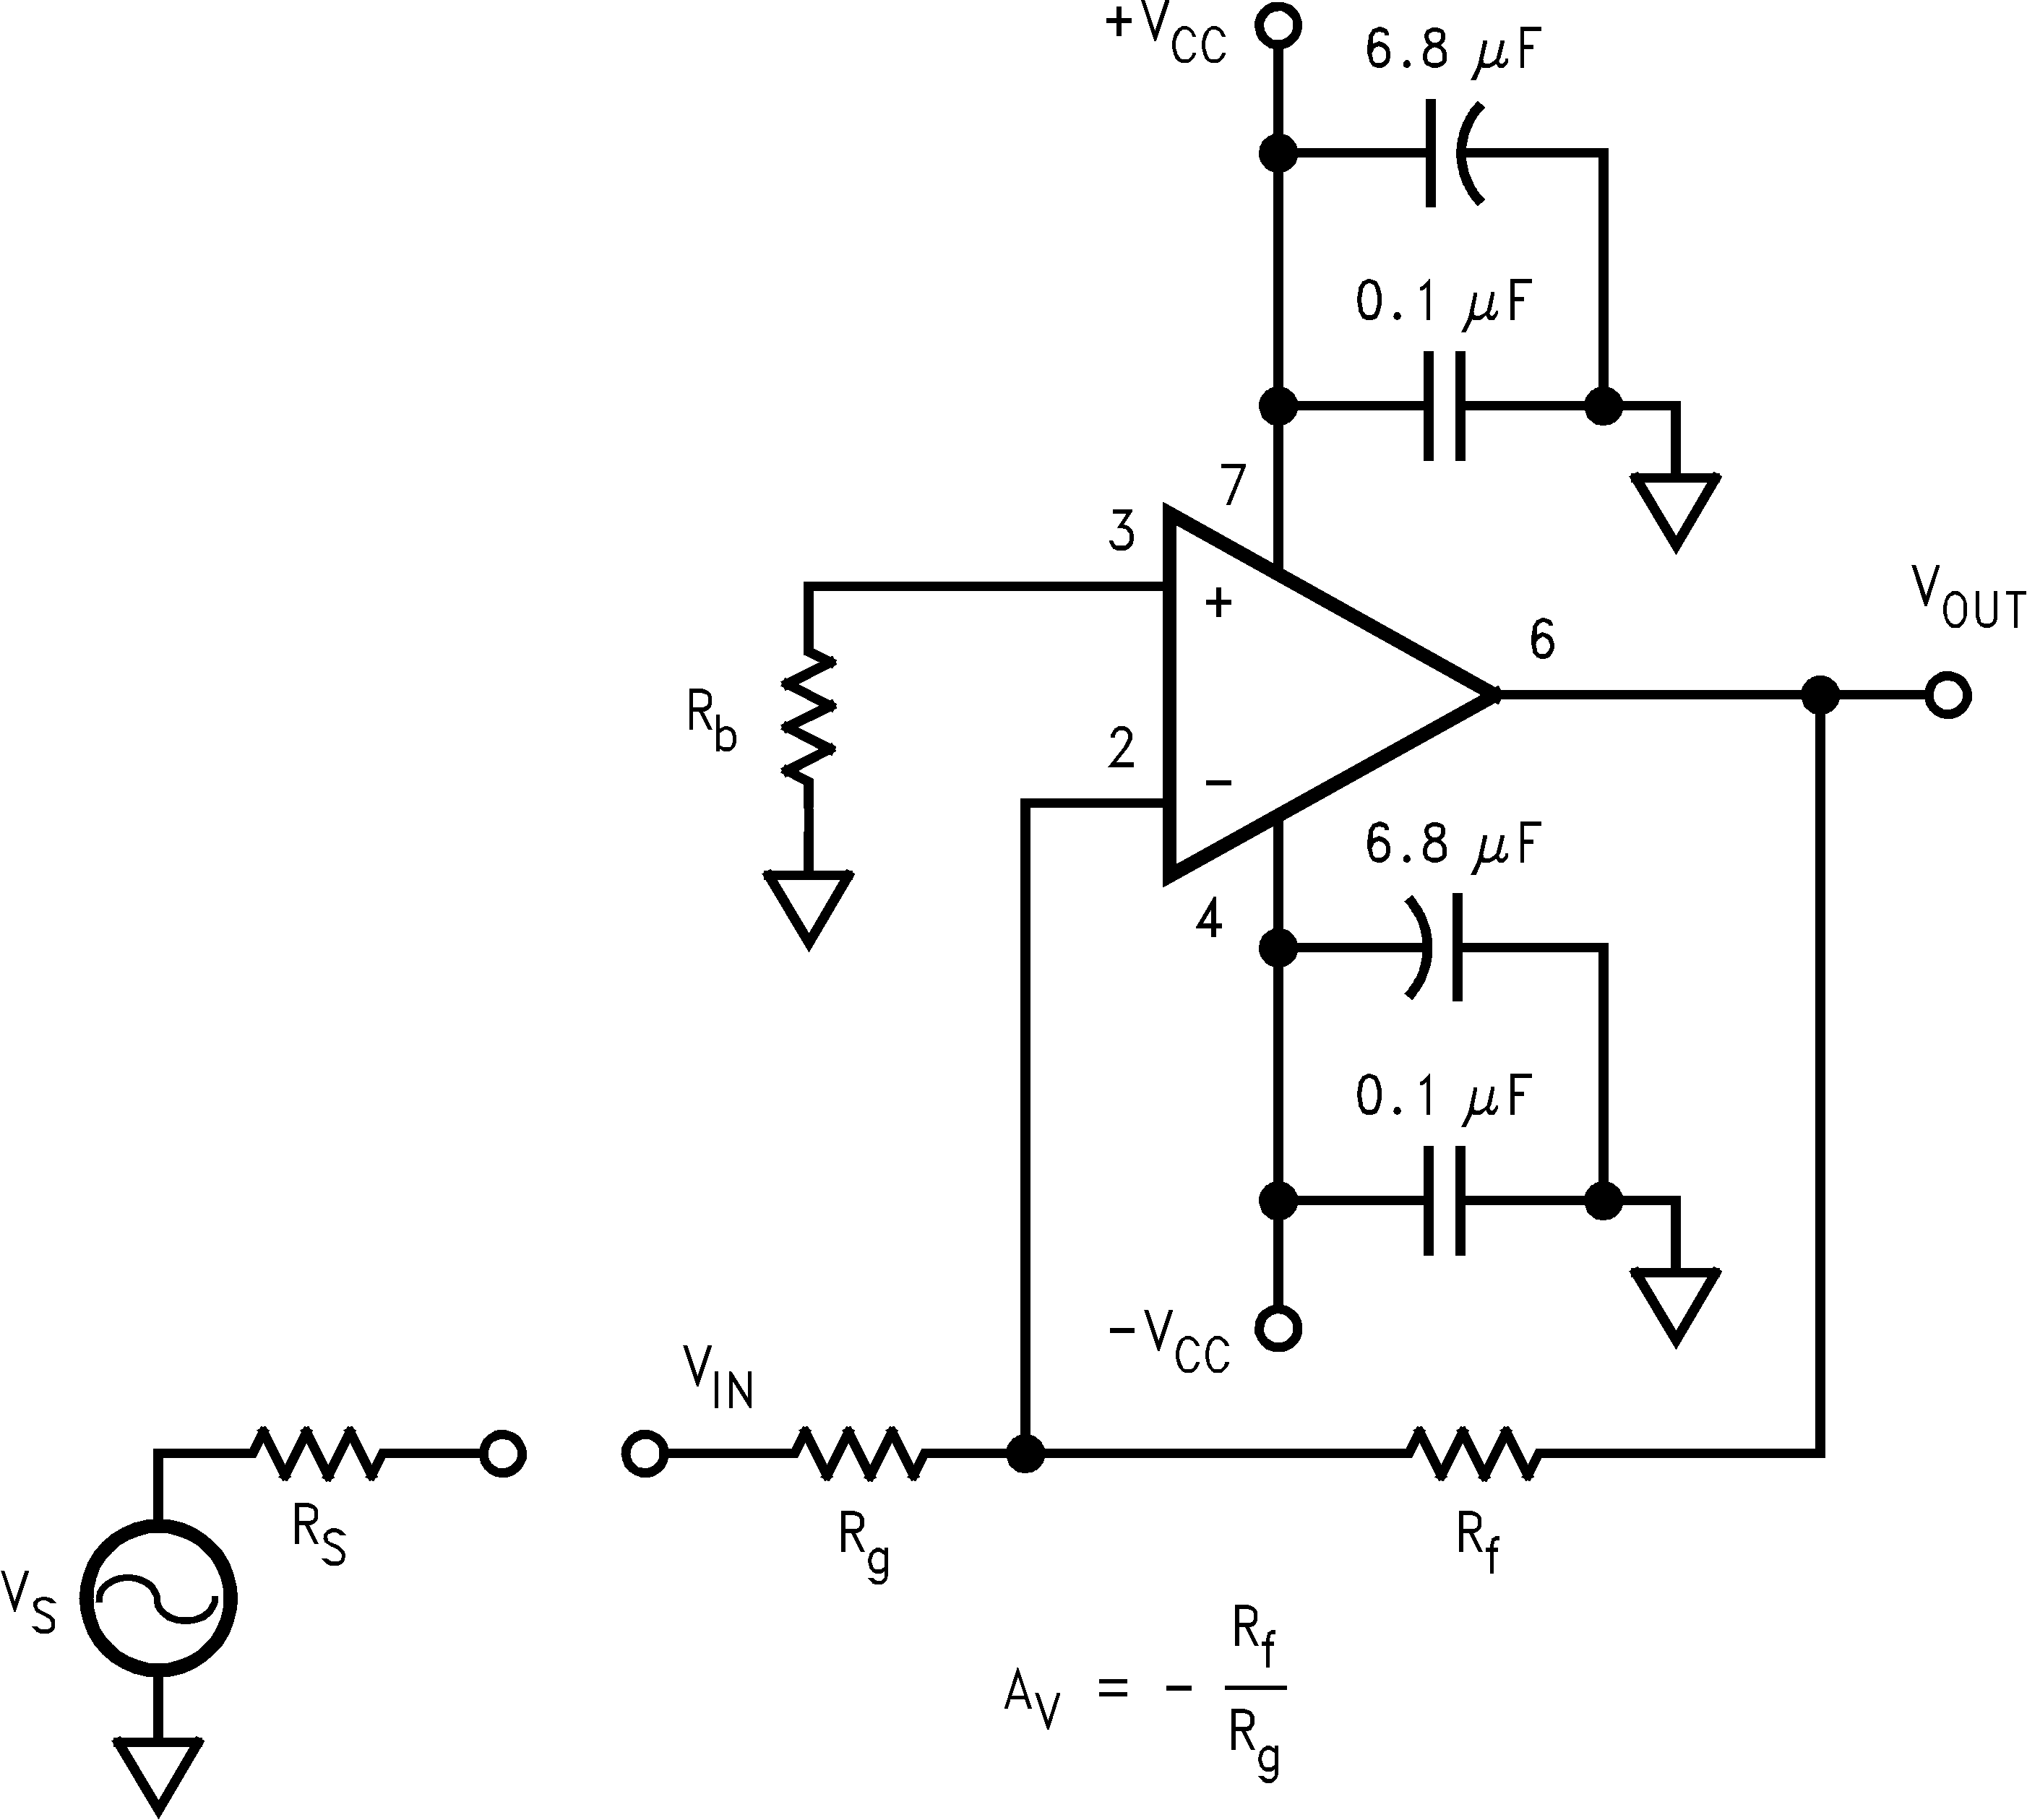 Lmh6626 Single Op Amp Bandpass Filter Inverting Amplifier Configuration